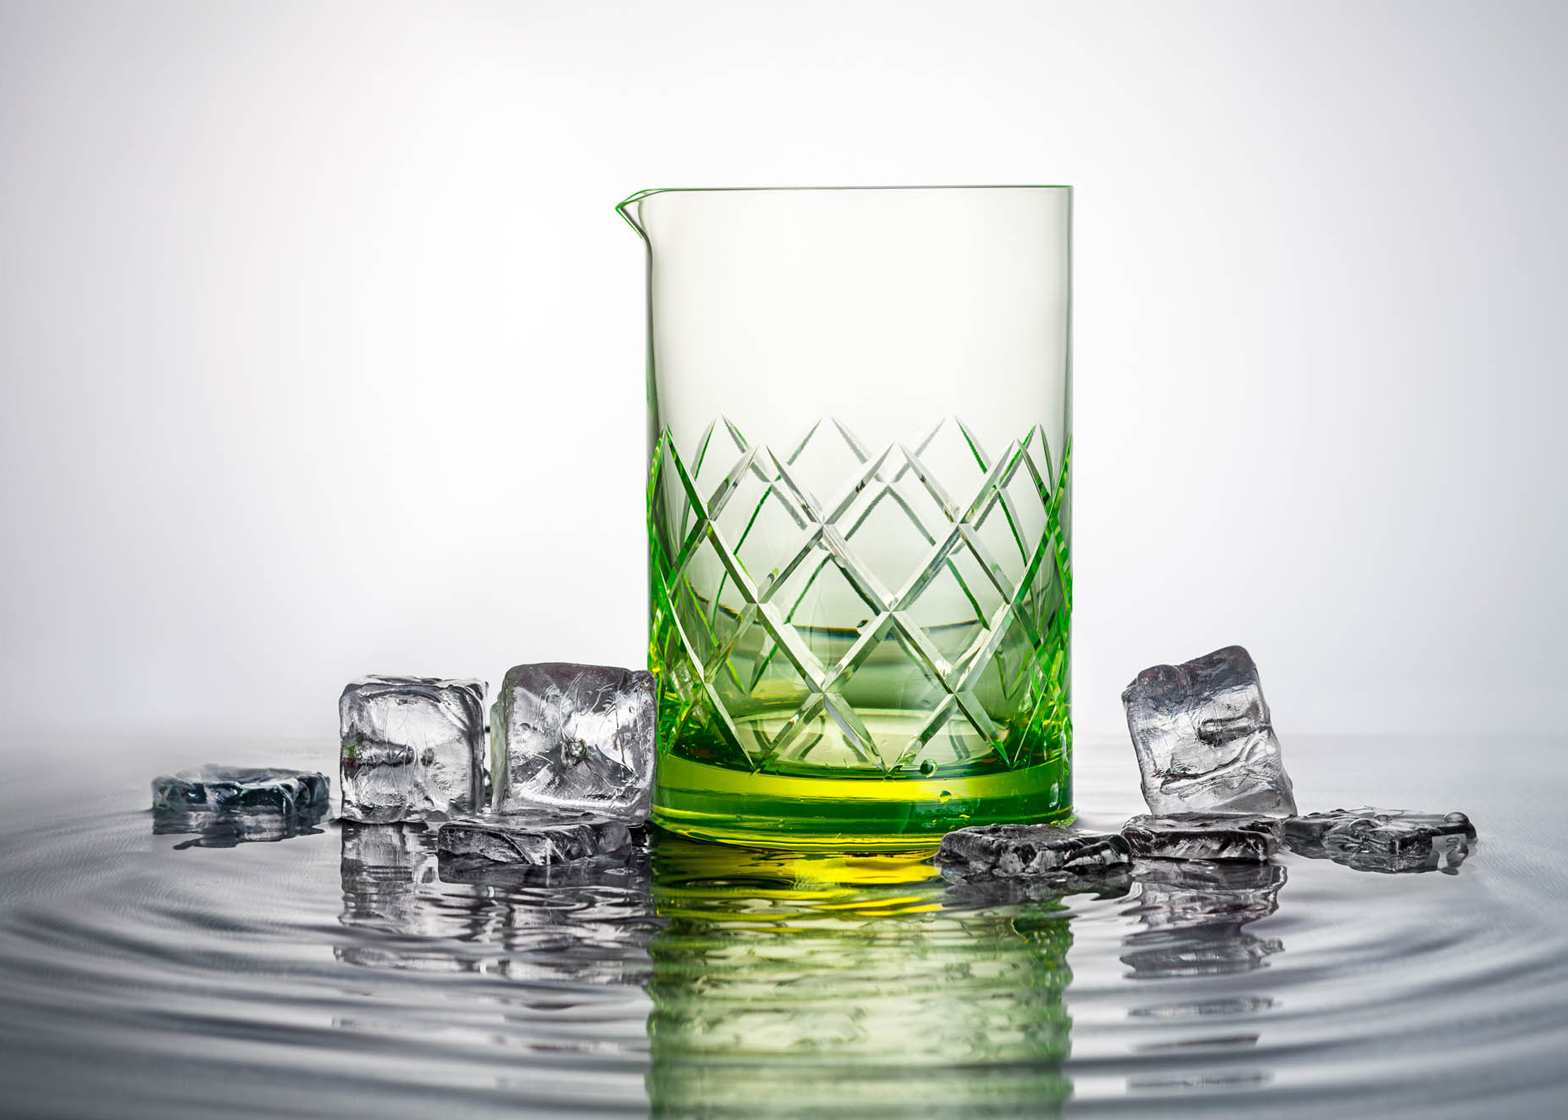 Uranium glassware by Martin Jakobsen reacts to UV light